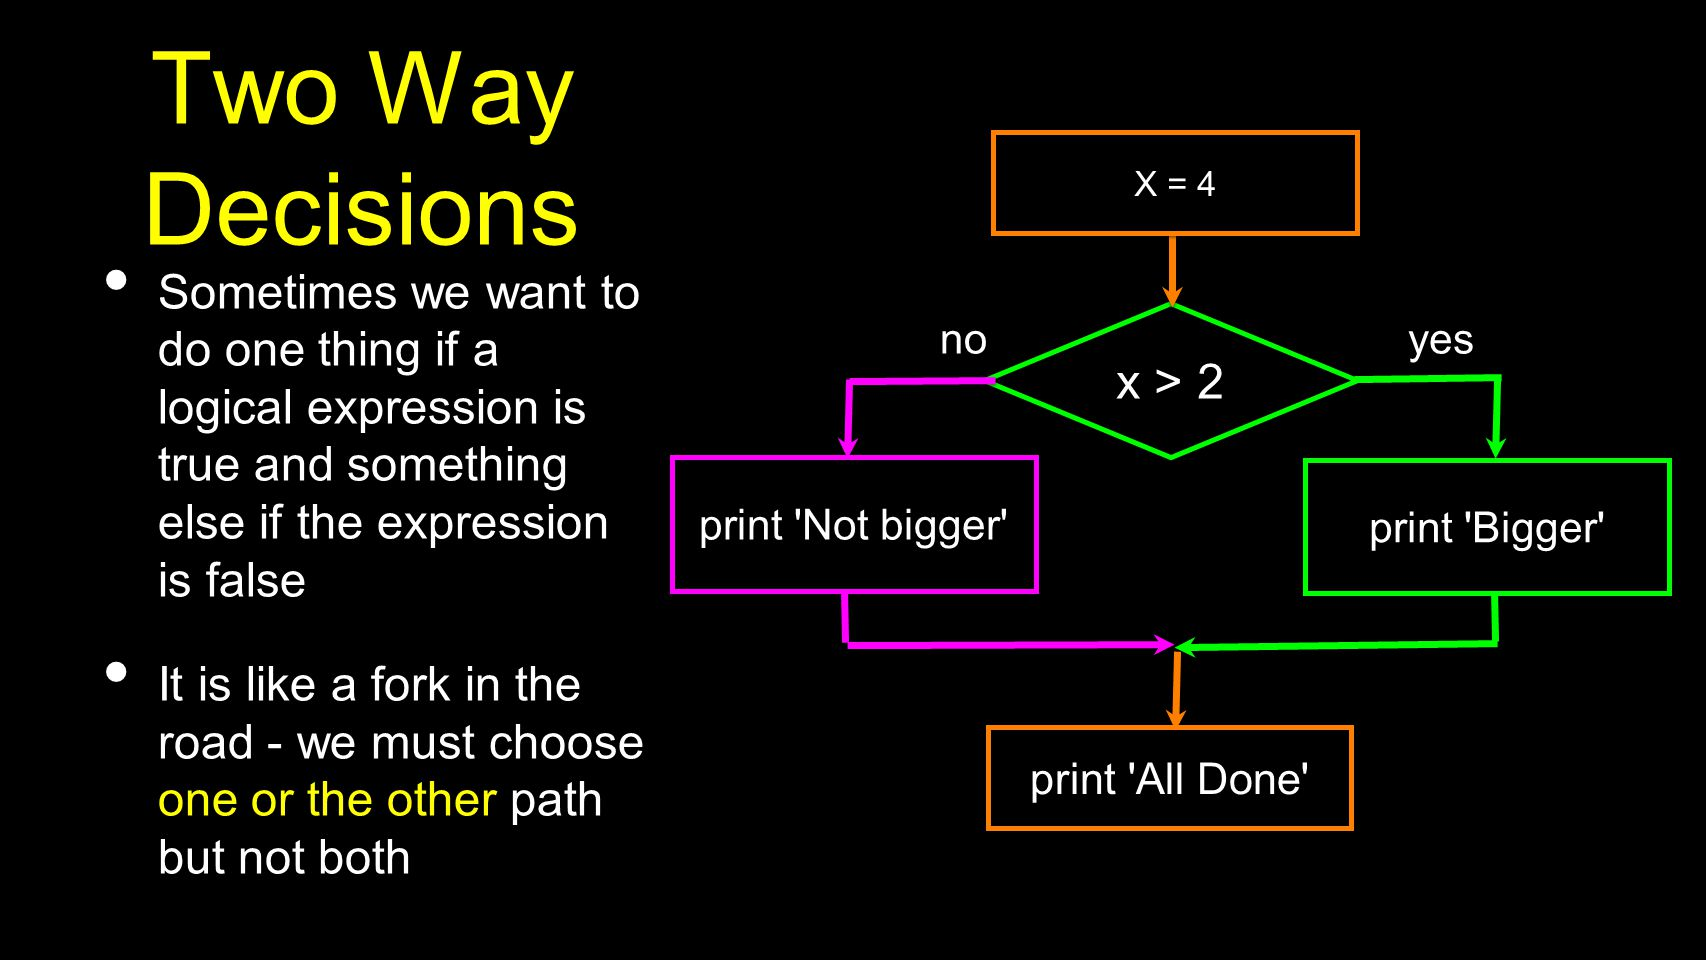 Two Way Decisions Sometimes we want to do one thing if a logical expression is true and something else if the expression is false It is like a fork in the road - we must choose one or the other path but not both x > 2 print Bigger yes no X = 4 print Not bigger print All Done